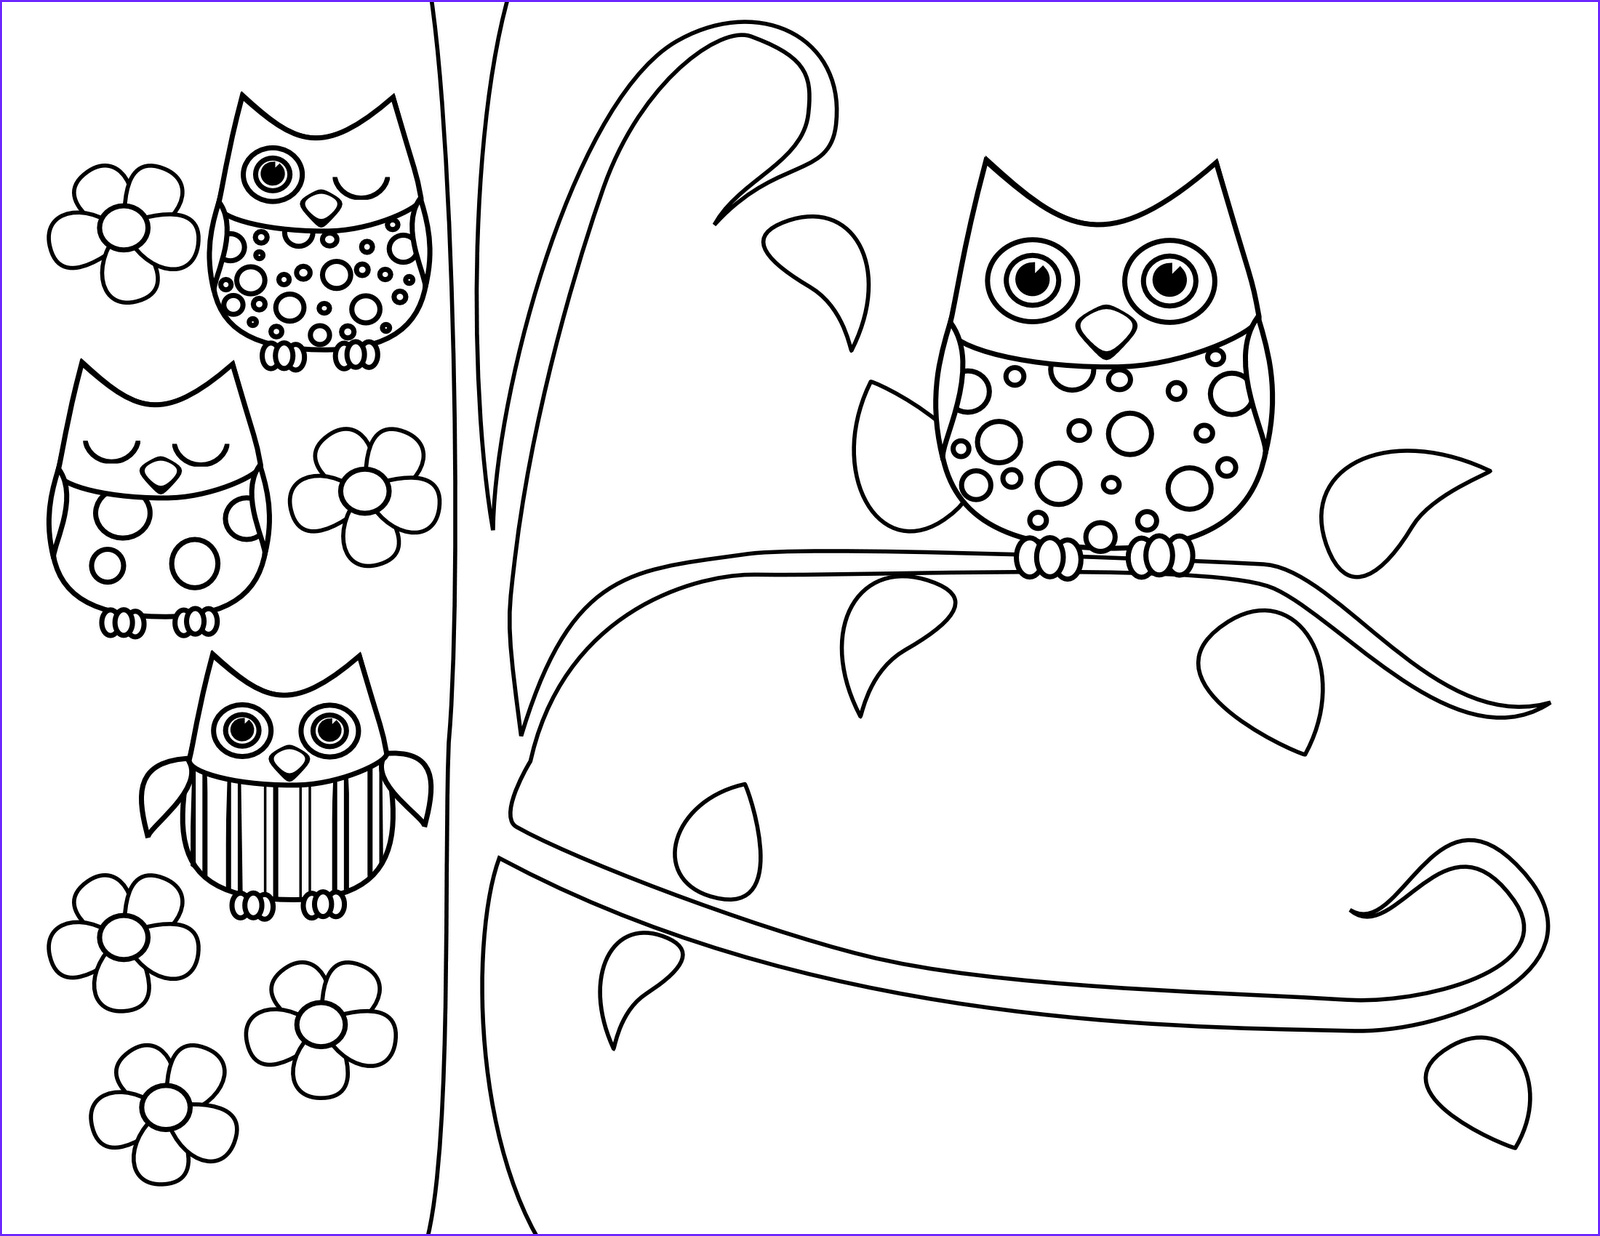 Free Printable Owl Coloring Pages Luxury Photos Cute Owl Coloring Pages Coloring Home